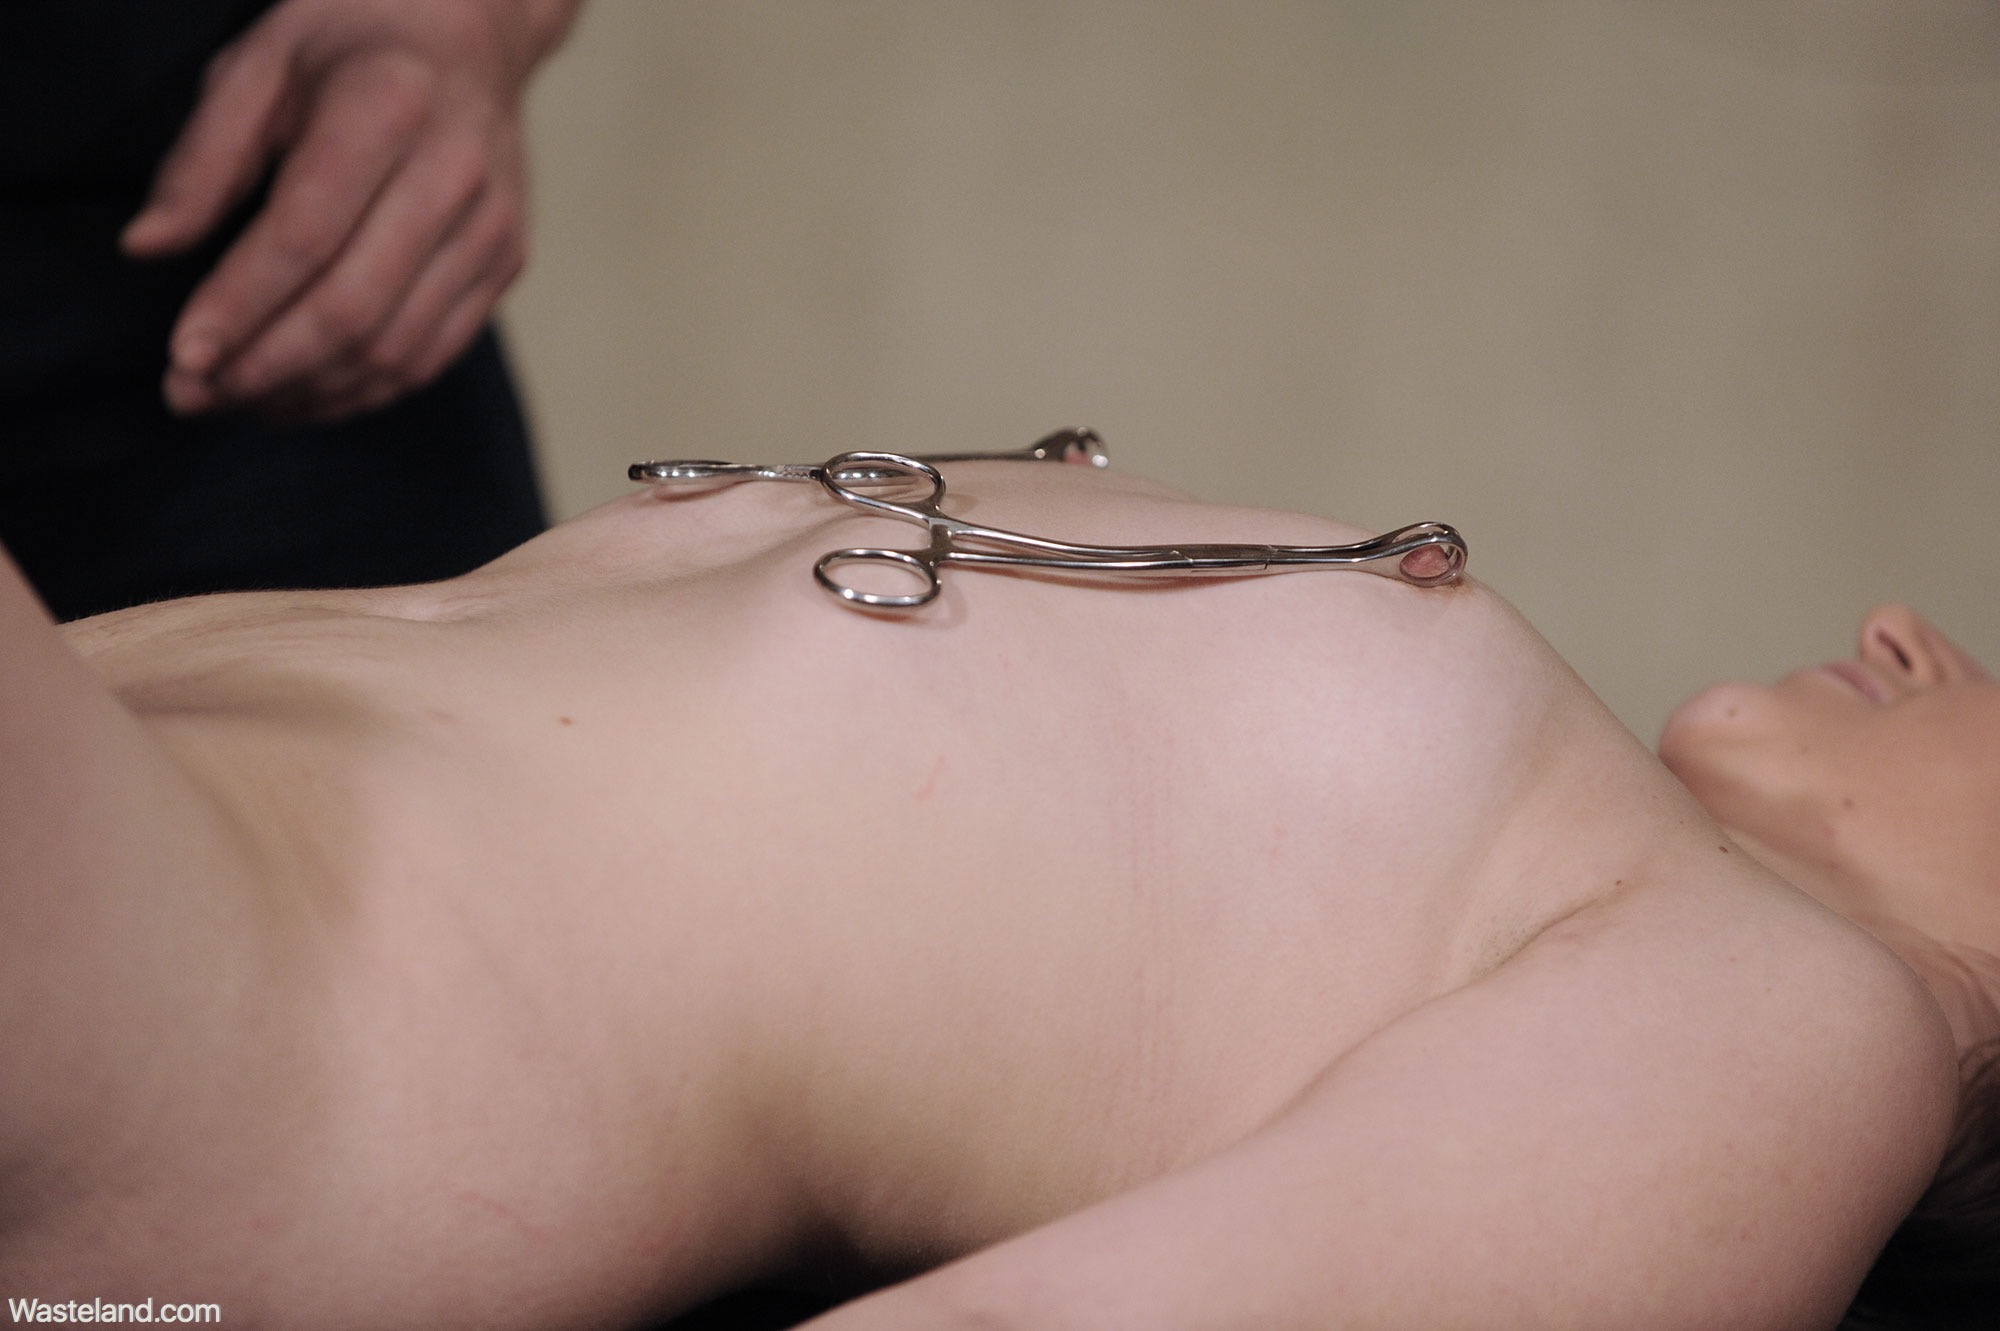 BDSM Sensory Play Surgical Clamps